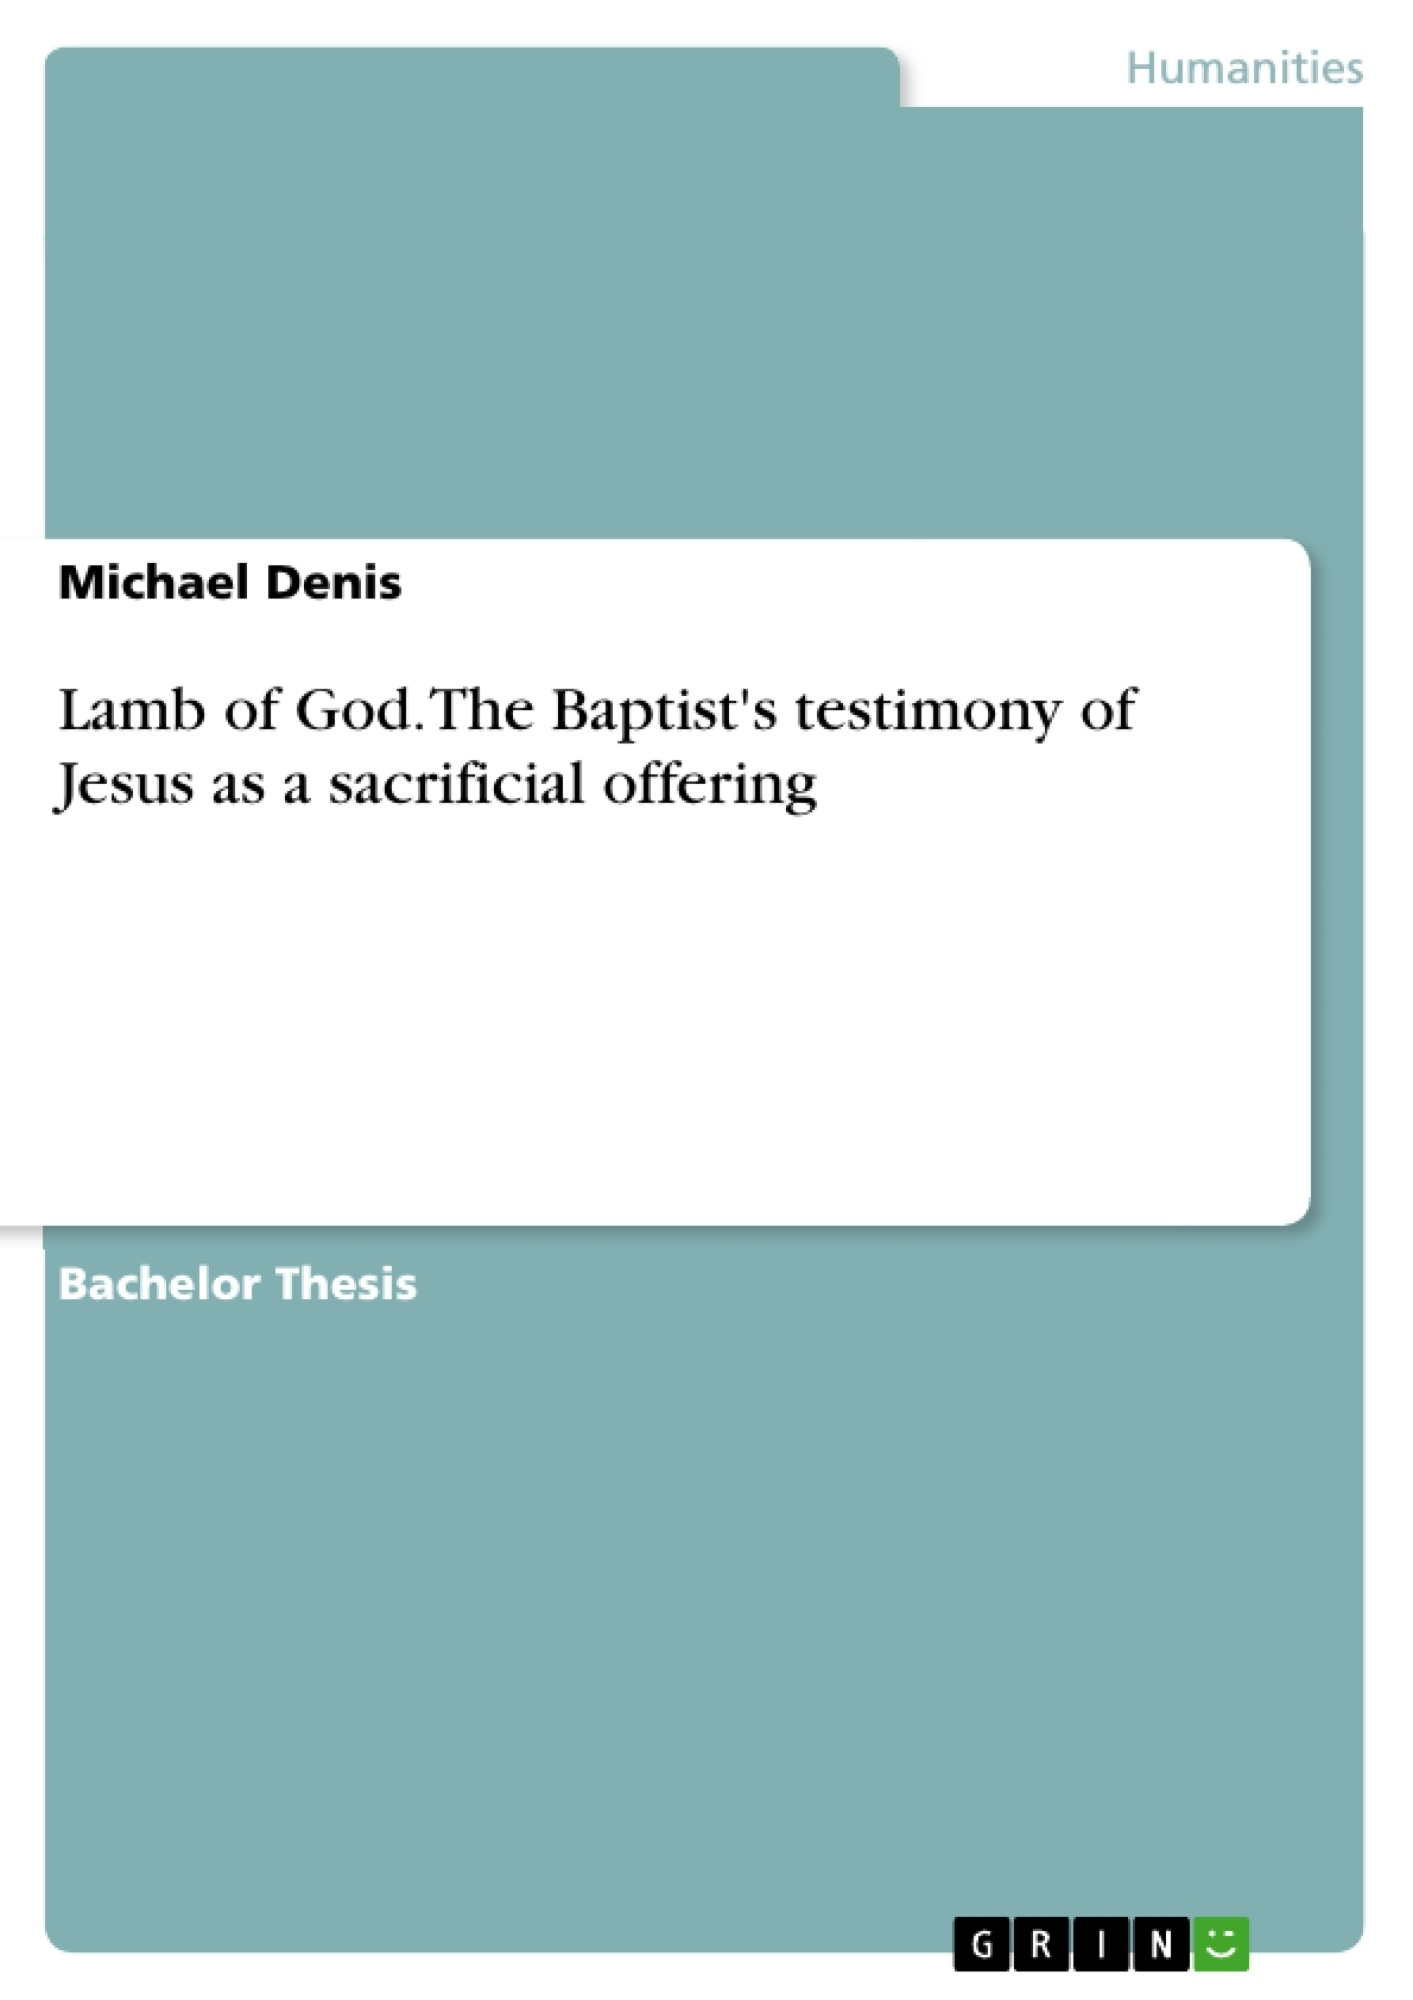 Title: Lamb of God. The Baptist's testimony of Jesus as a sacrificial offering